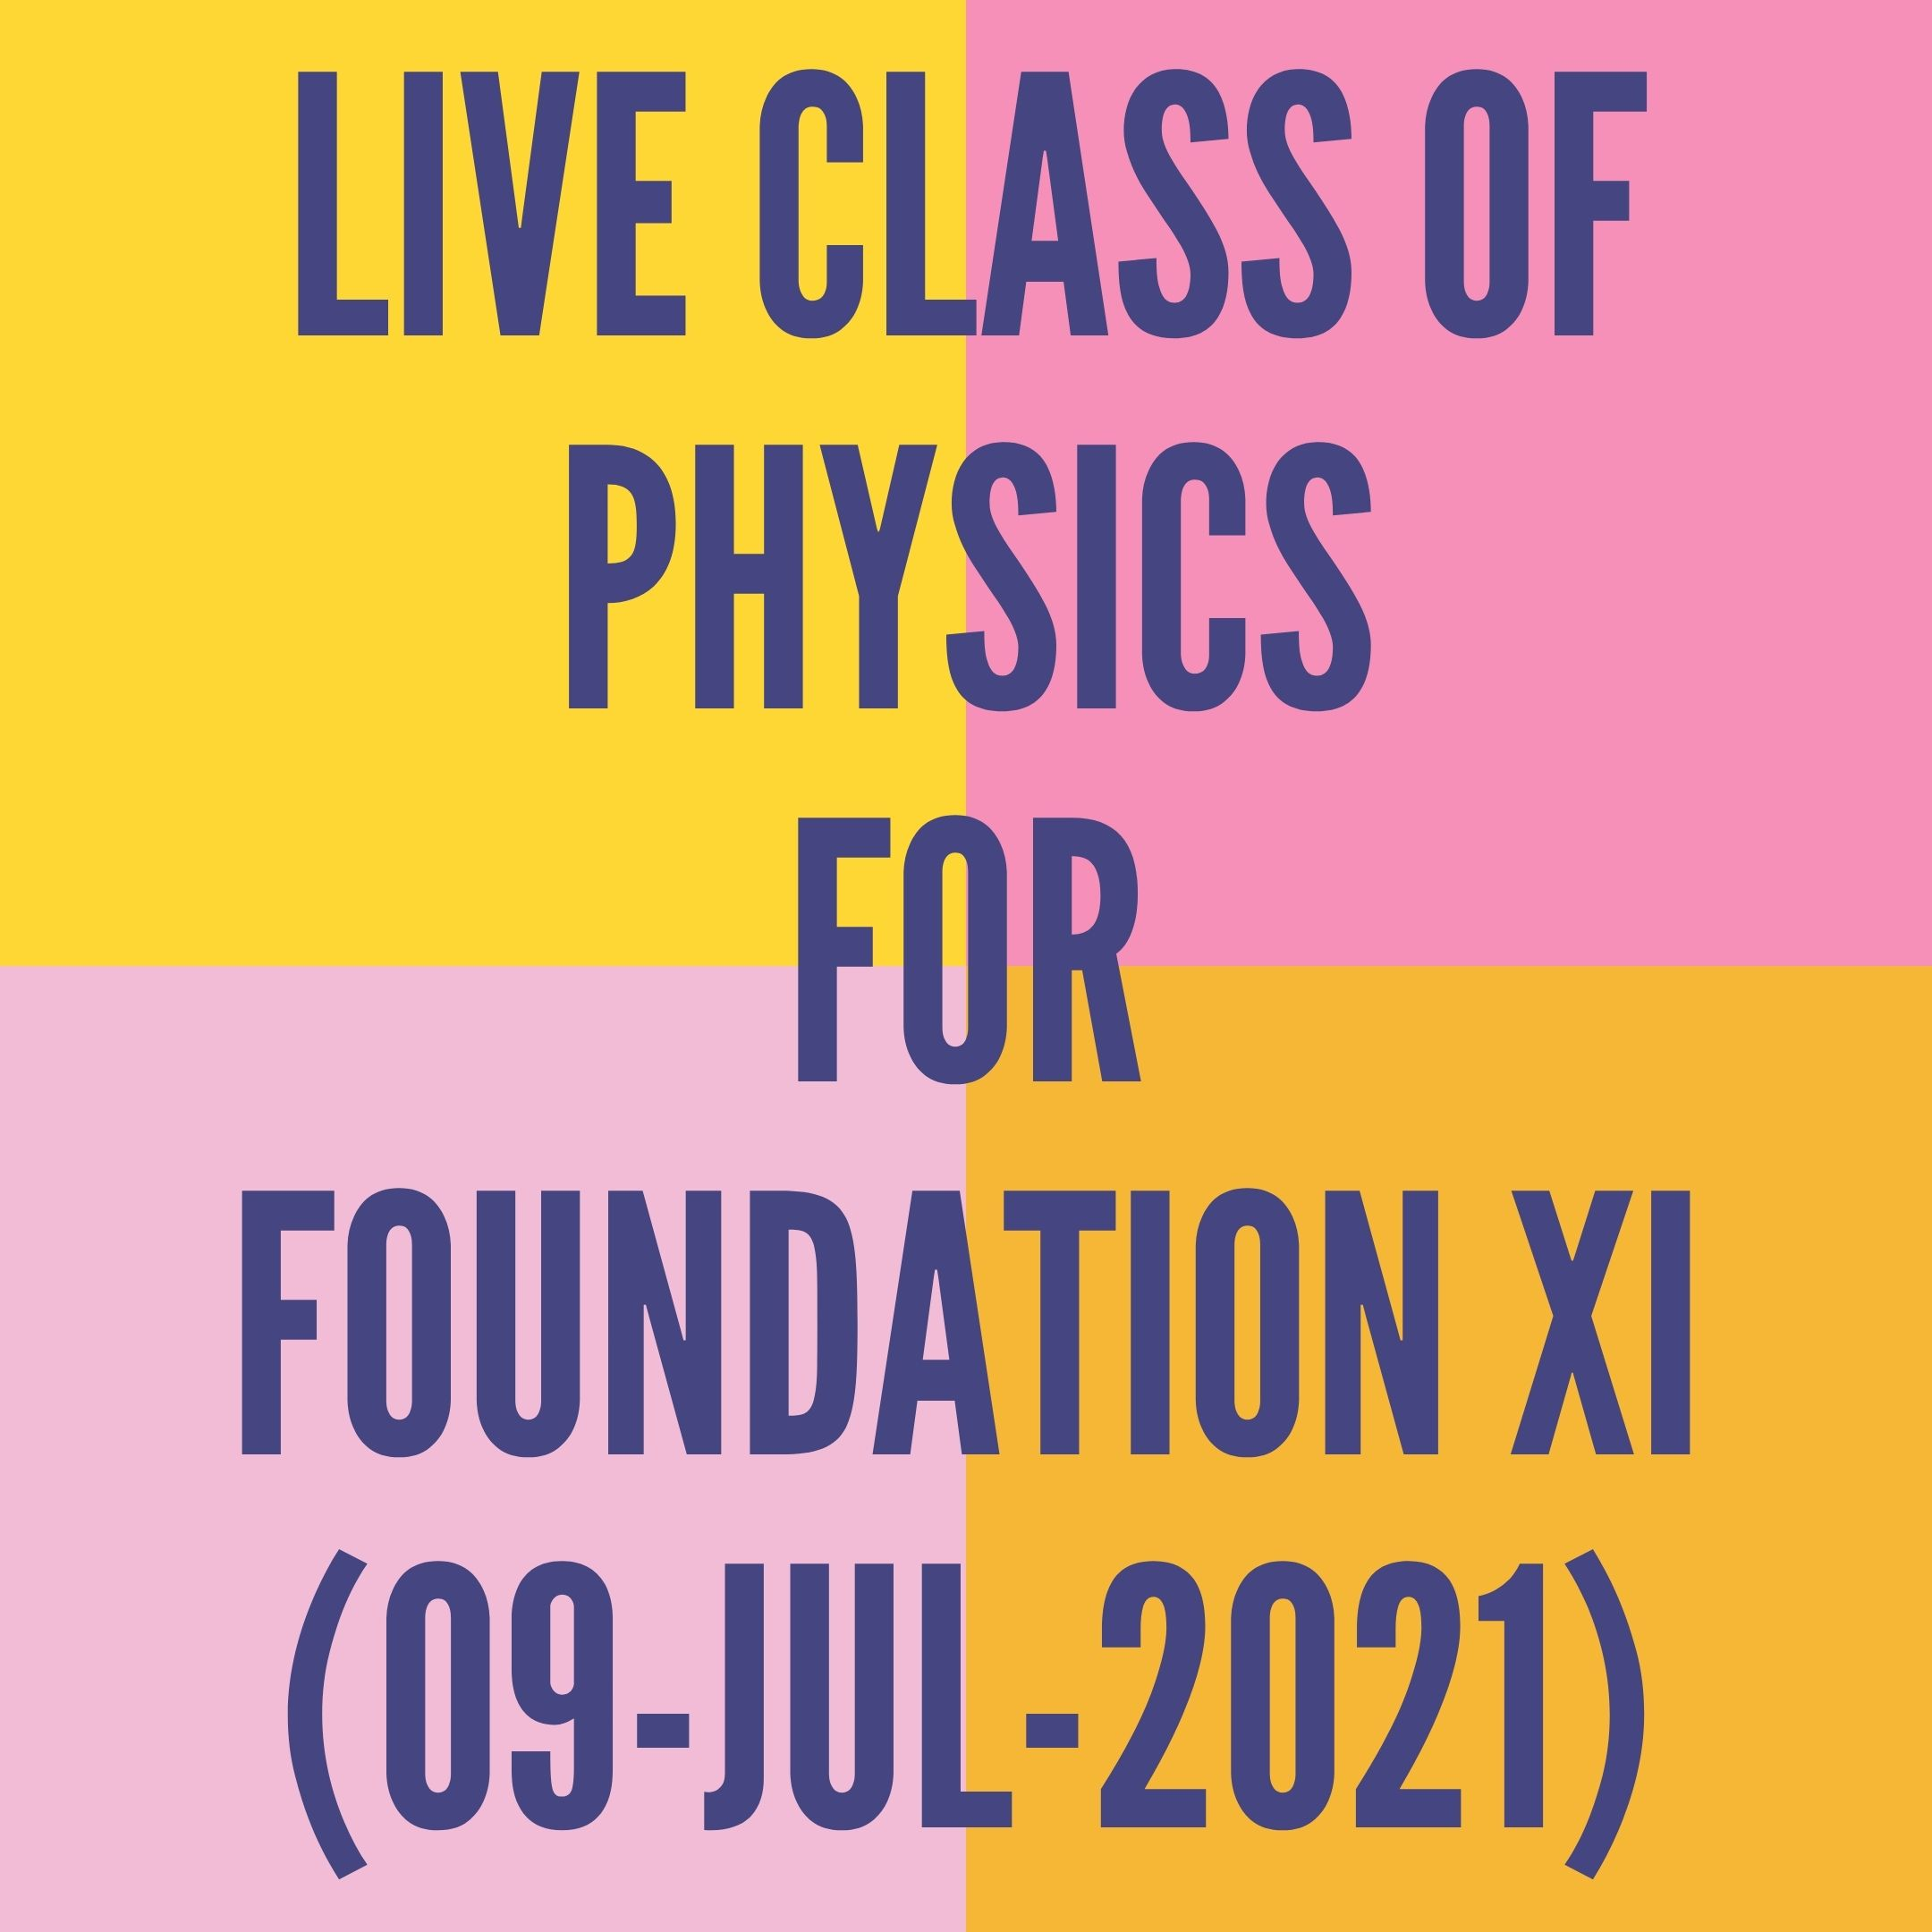 LIVE CLASS OF PHYSICS FOR FOUNDATION XI (09-JUL-2021) APPLIED MATH